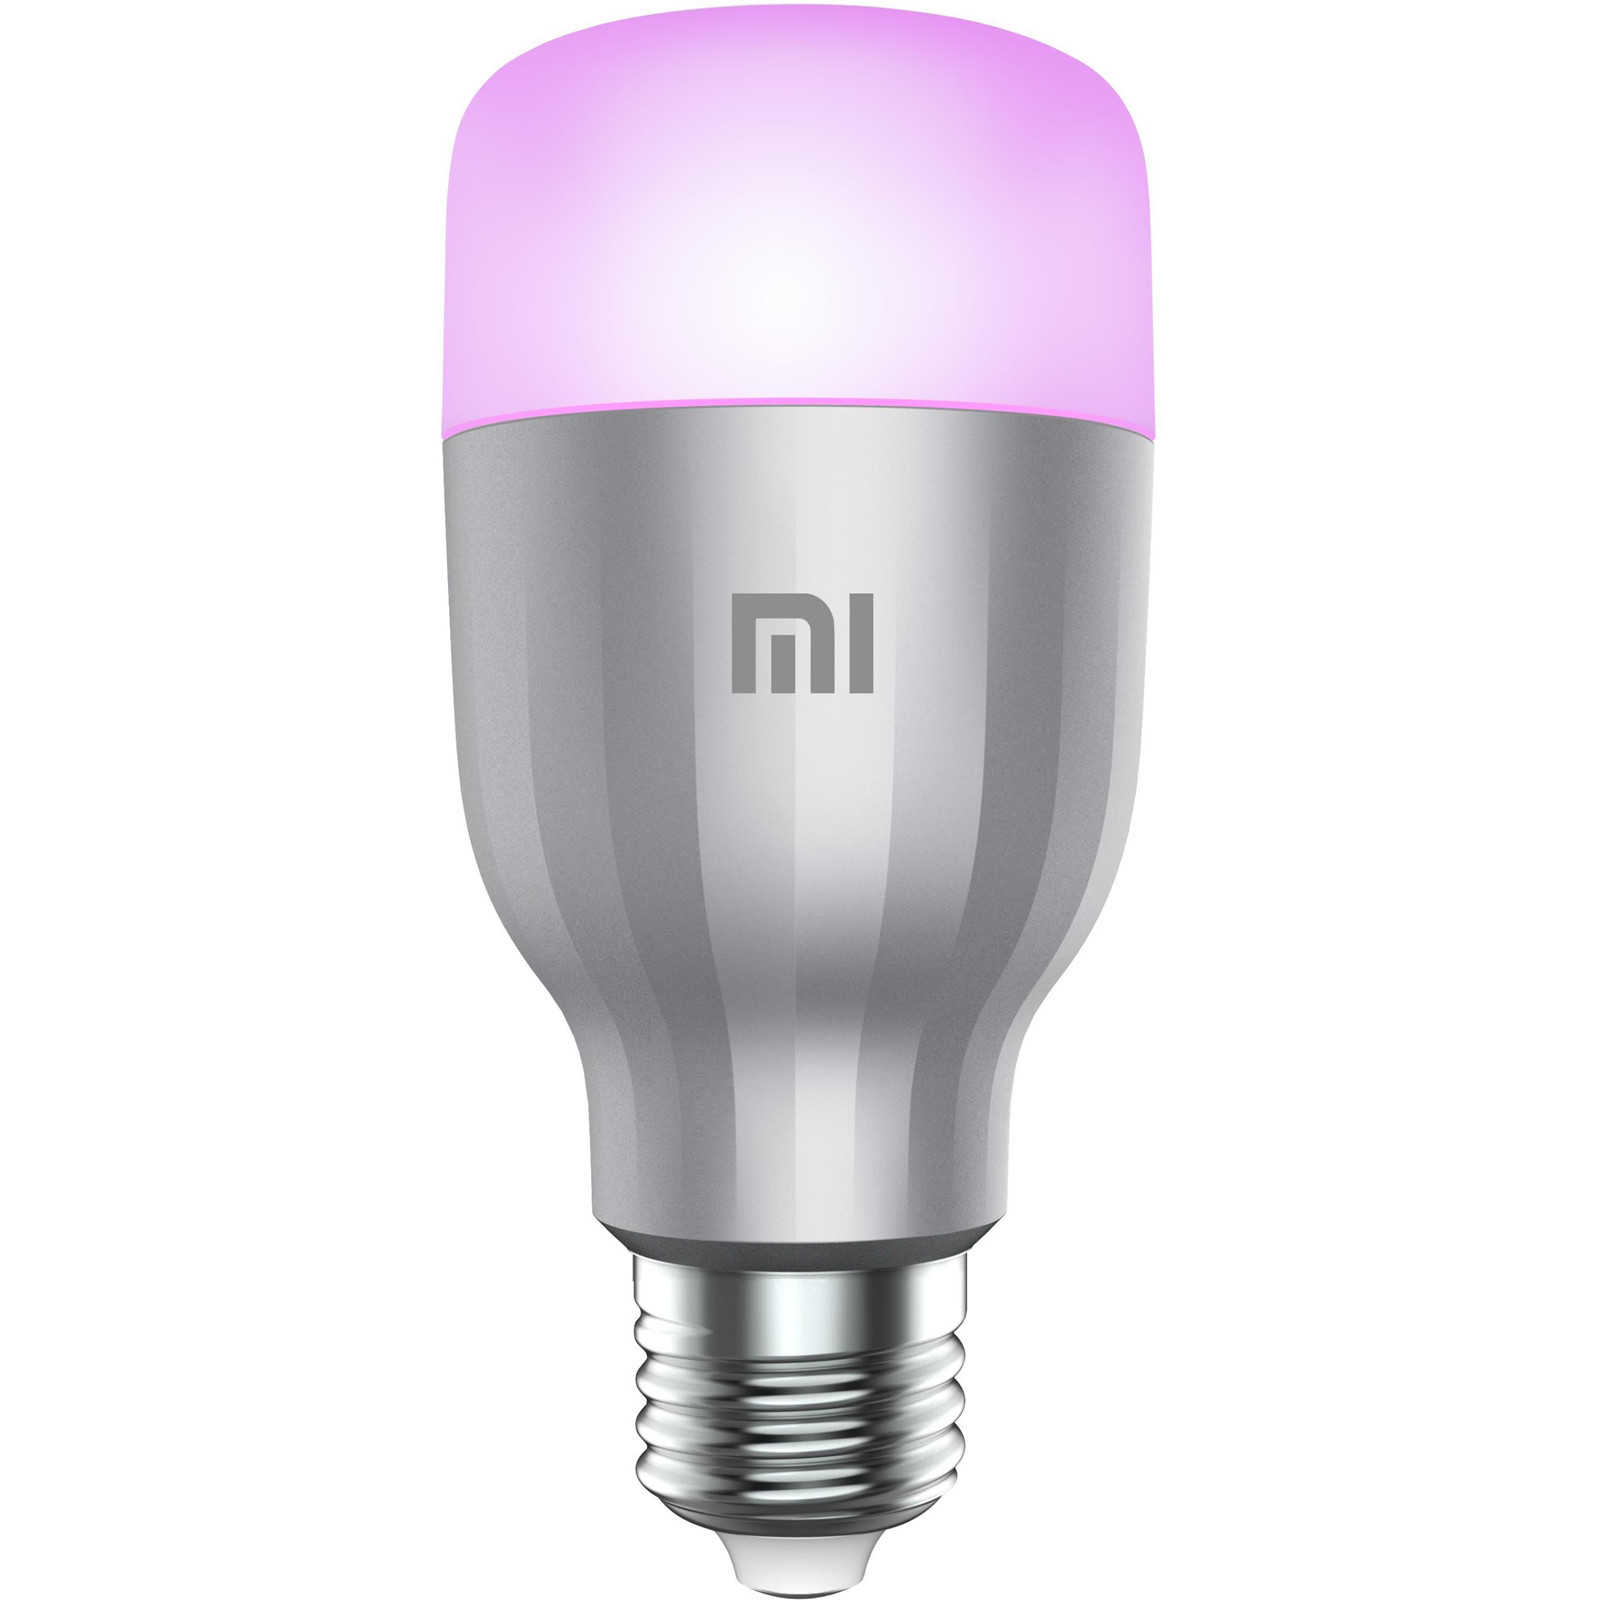 Xiaomi Mi Home Smart LED RGB Light Bulb WiFi image